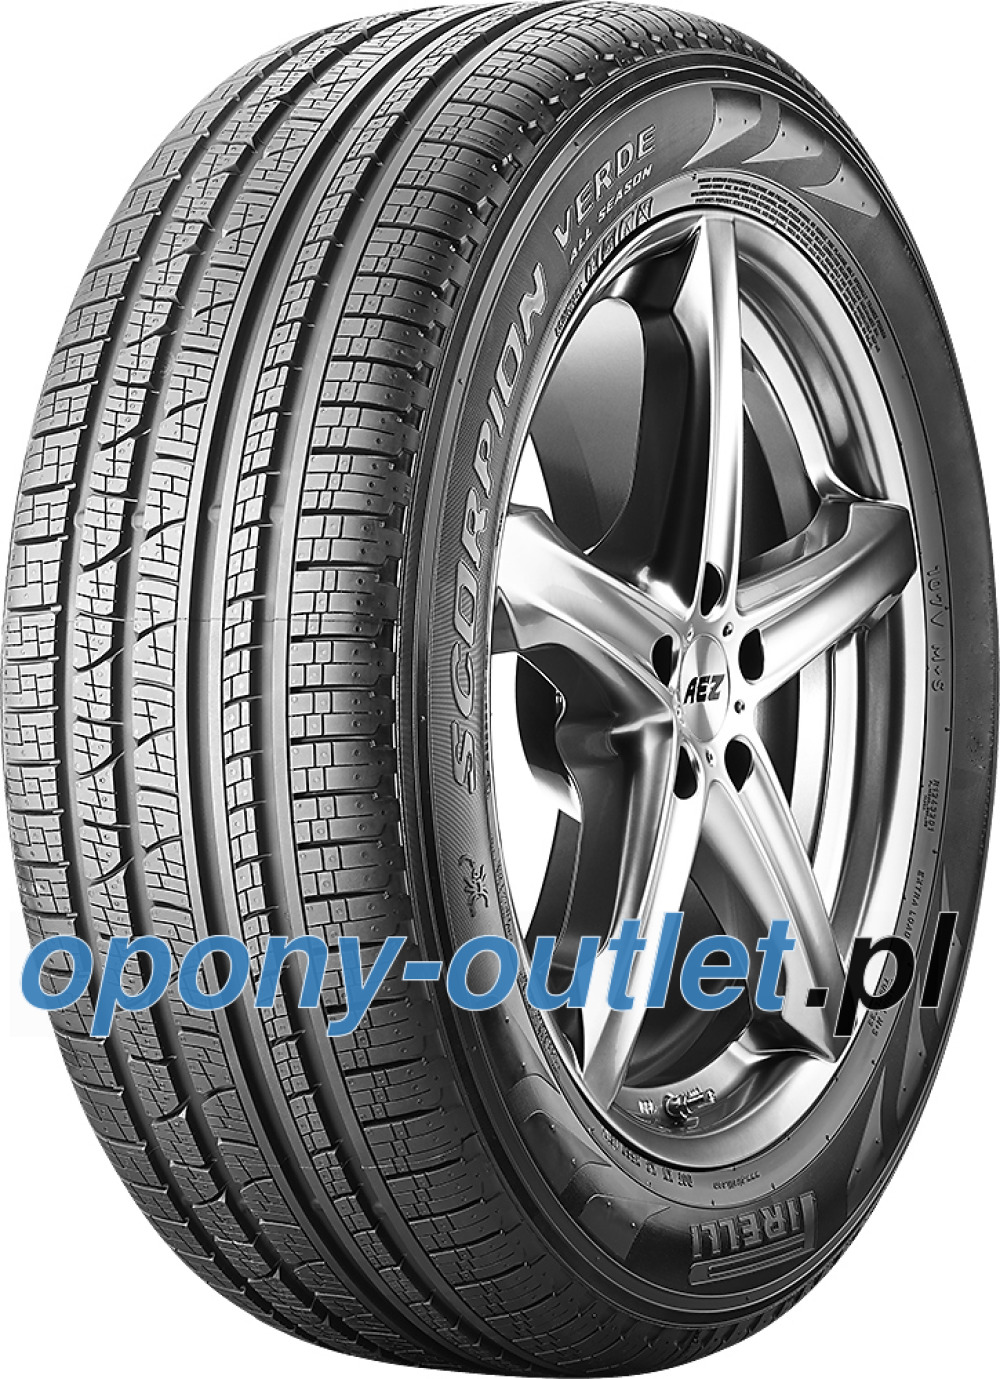 Pirelli Scorpion Verde All-Season ( 275/40 R21 107V XL VOL, PNCS )